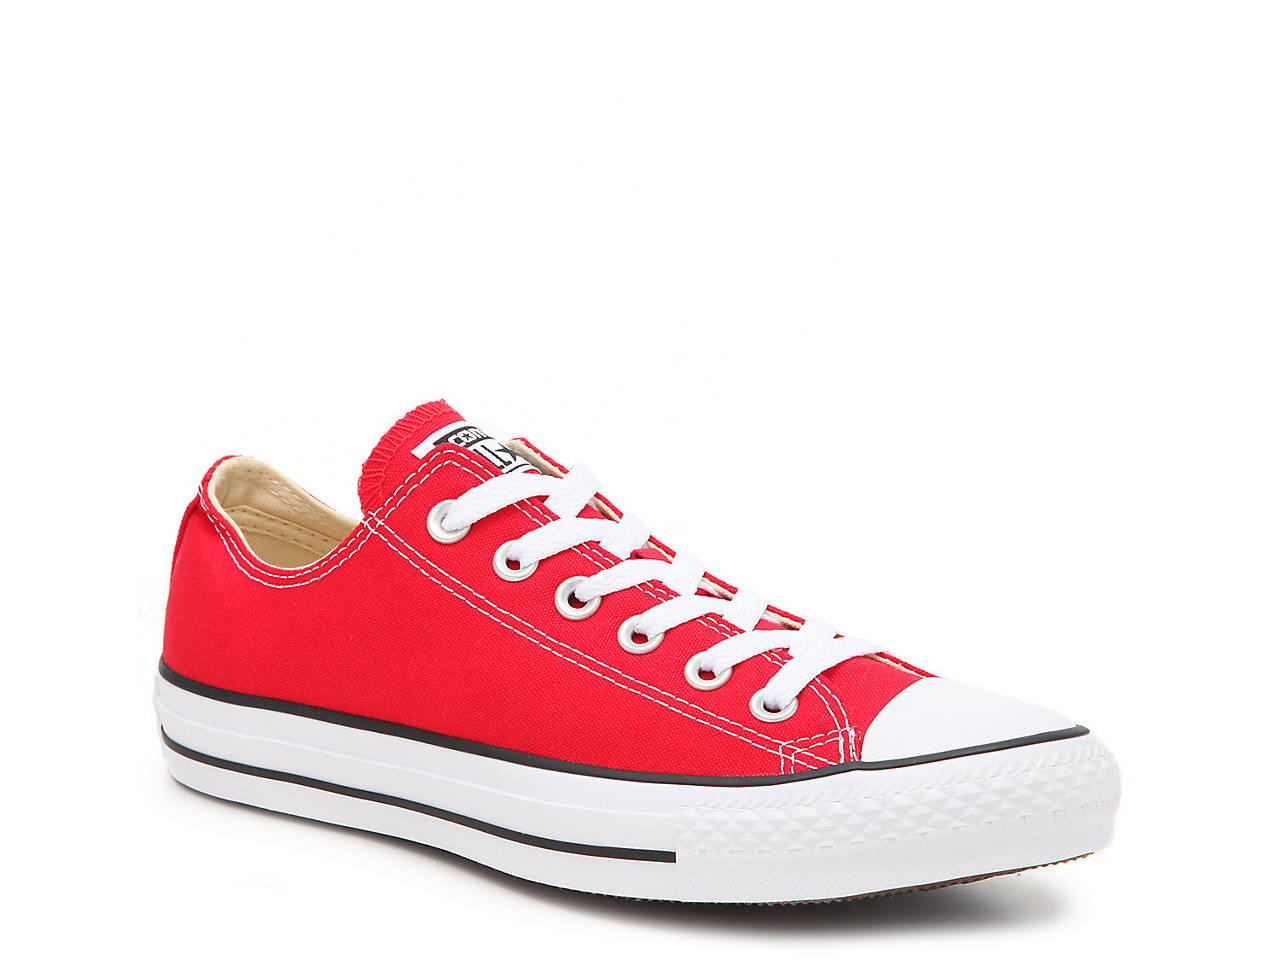 a19f71547ec Converse Chuck Taylor All Star Sneaker - Women s Women s Shoes